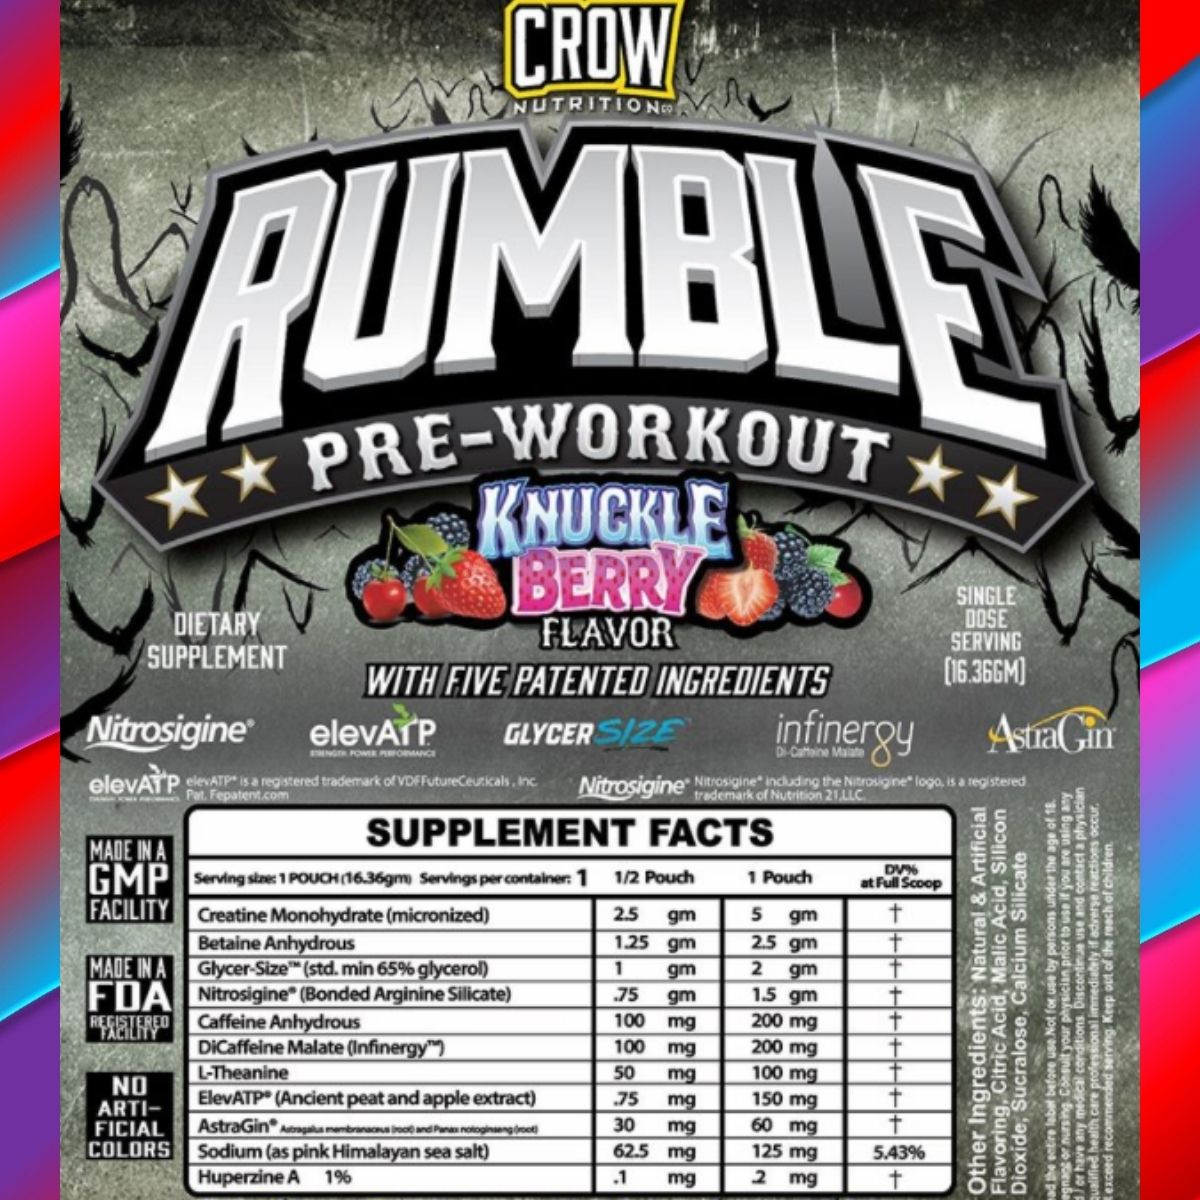 Crow Nutrition Rumble Pre-Workout Knuckle Berry Flavor